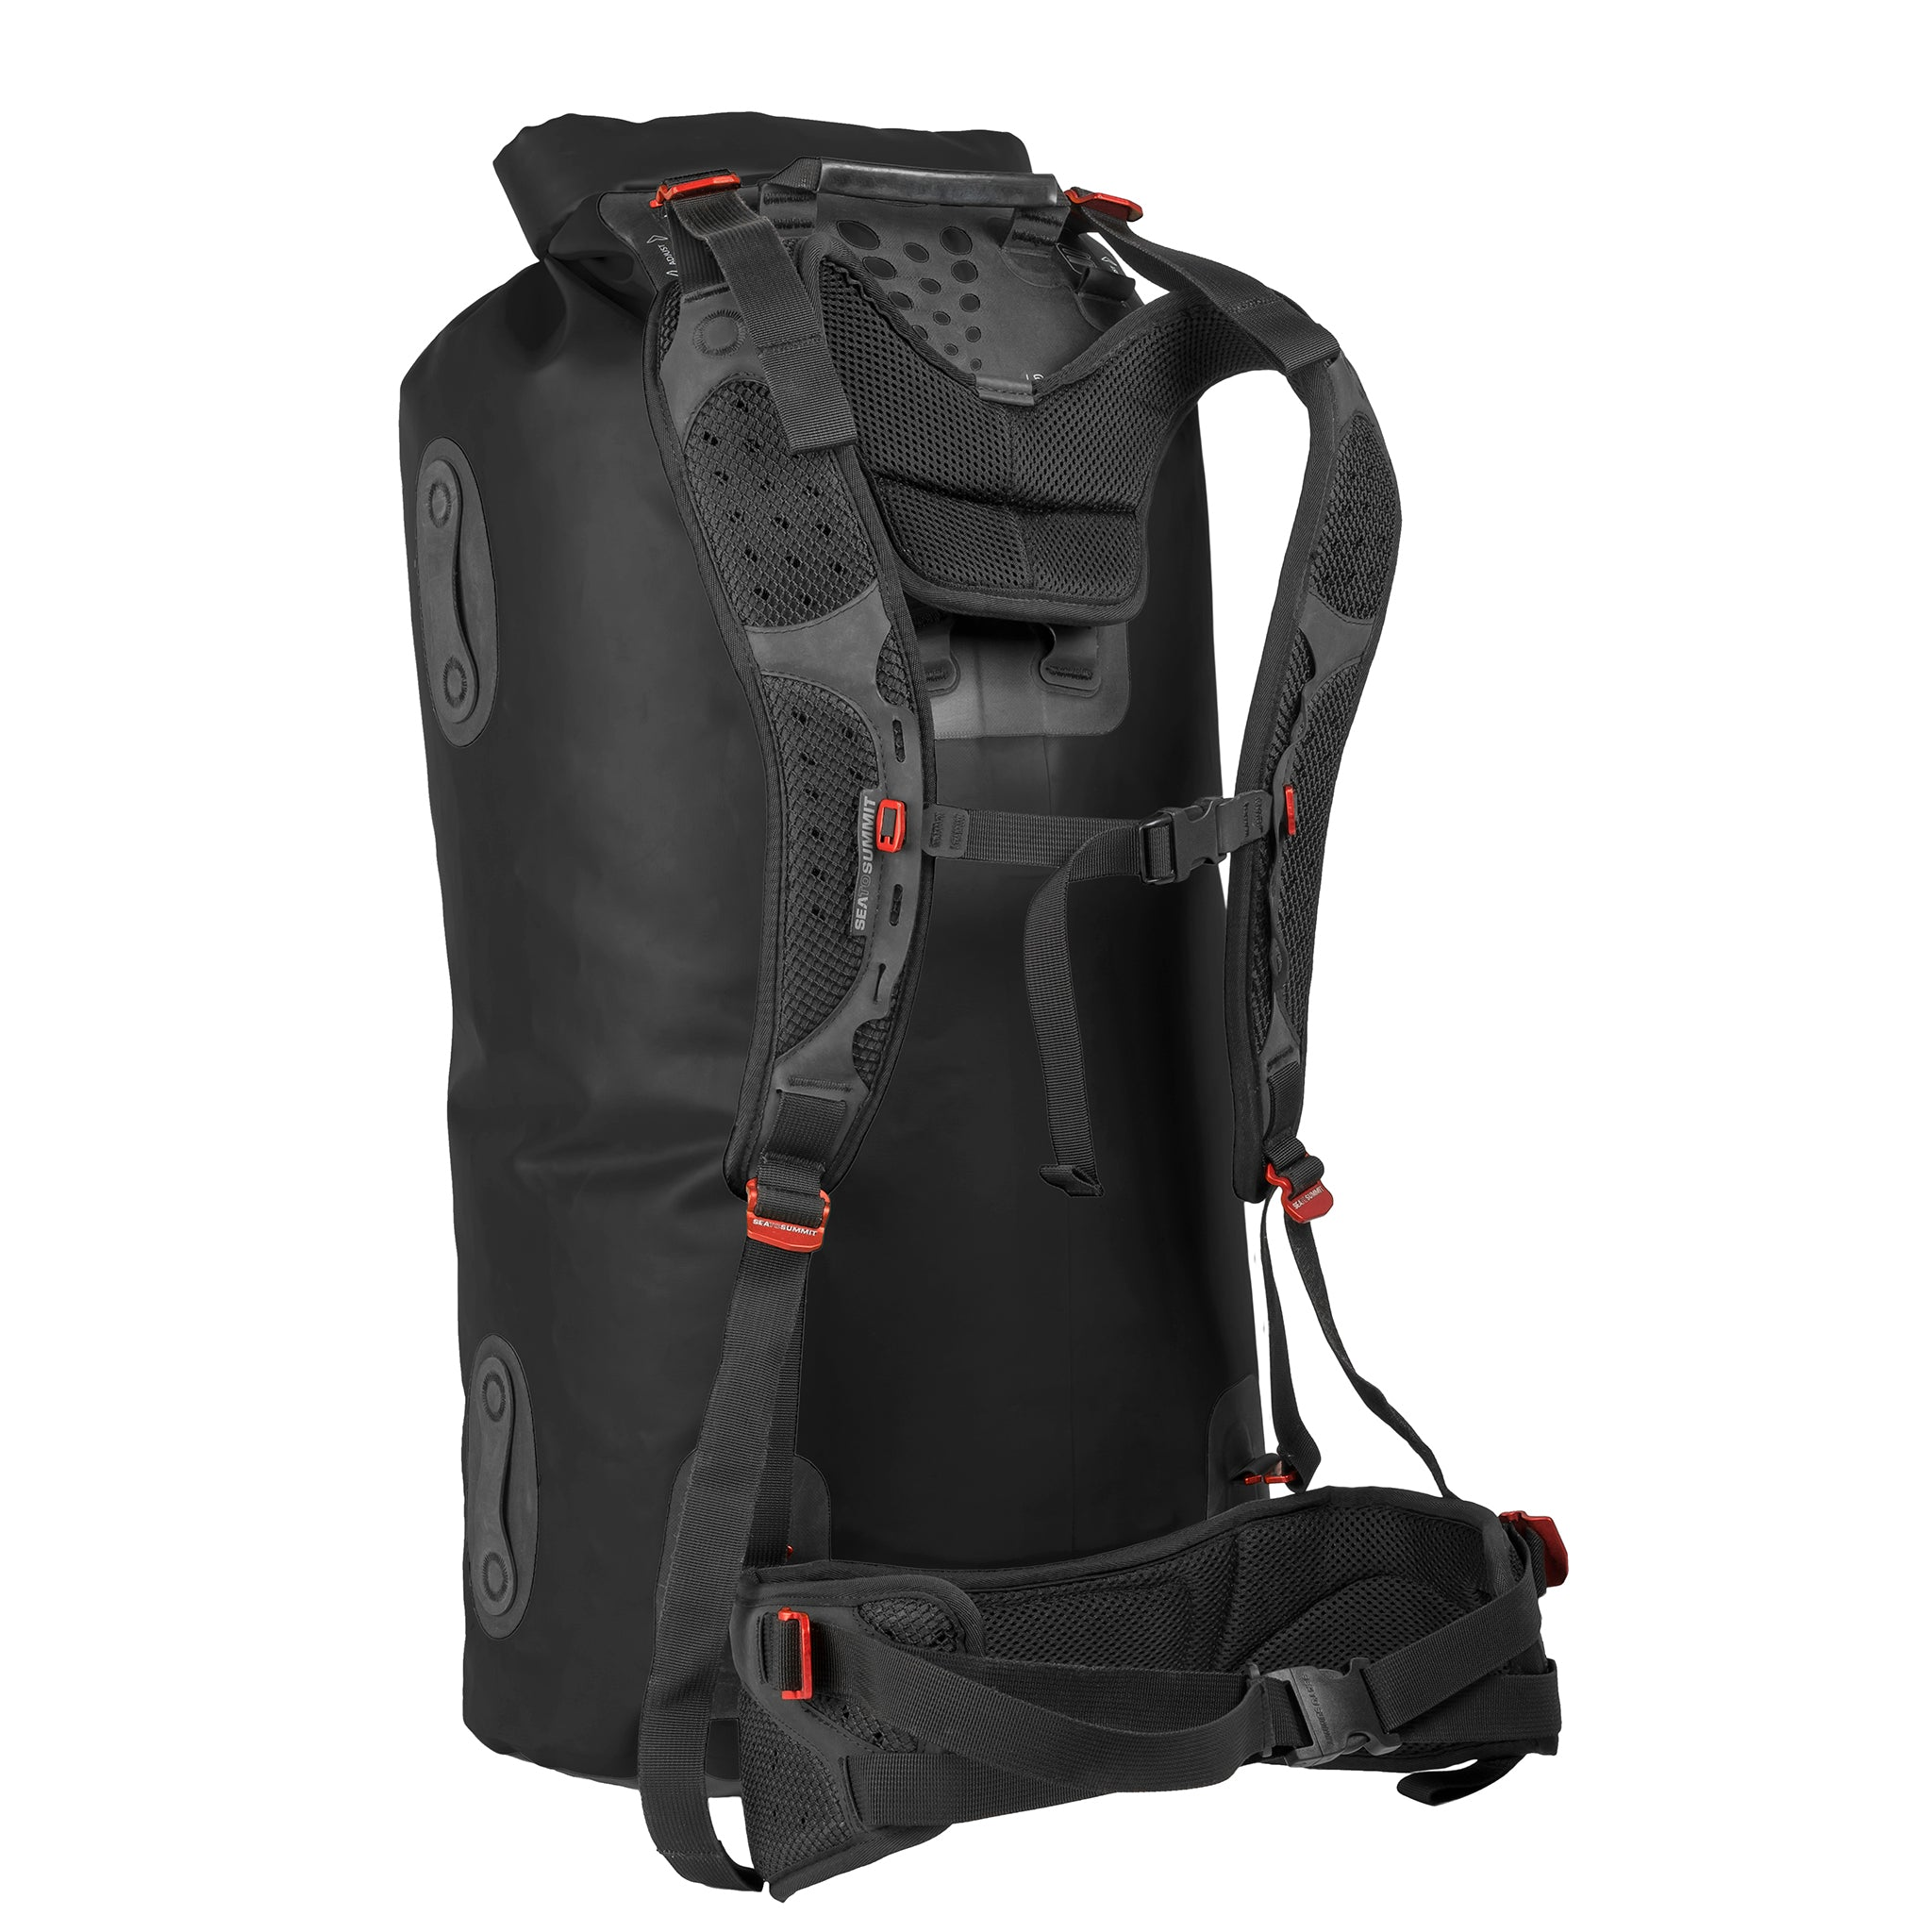 Hydraulic Dry Pack bag _ 90 liter _ black